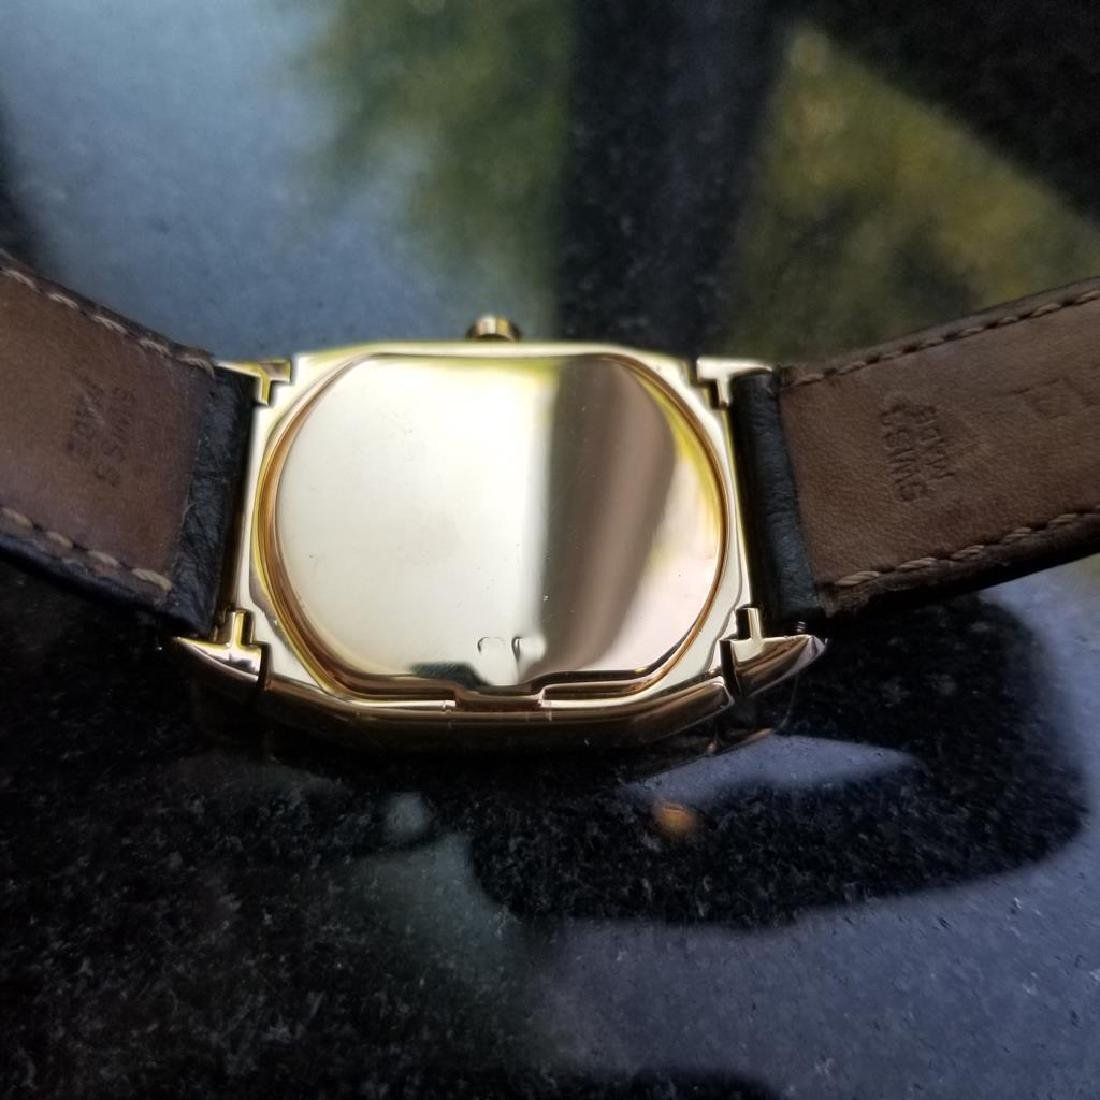 ROLEX Cellini 6633 18K Solid Gold Watch, c.2000 all - 5